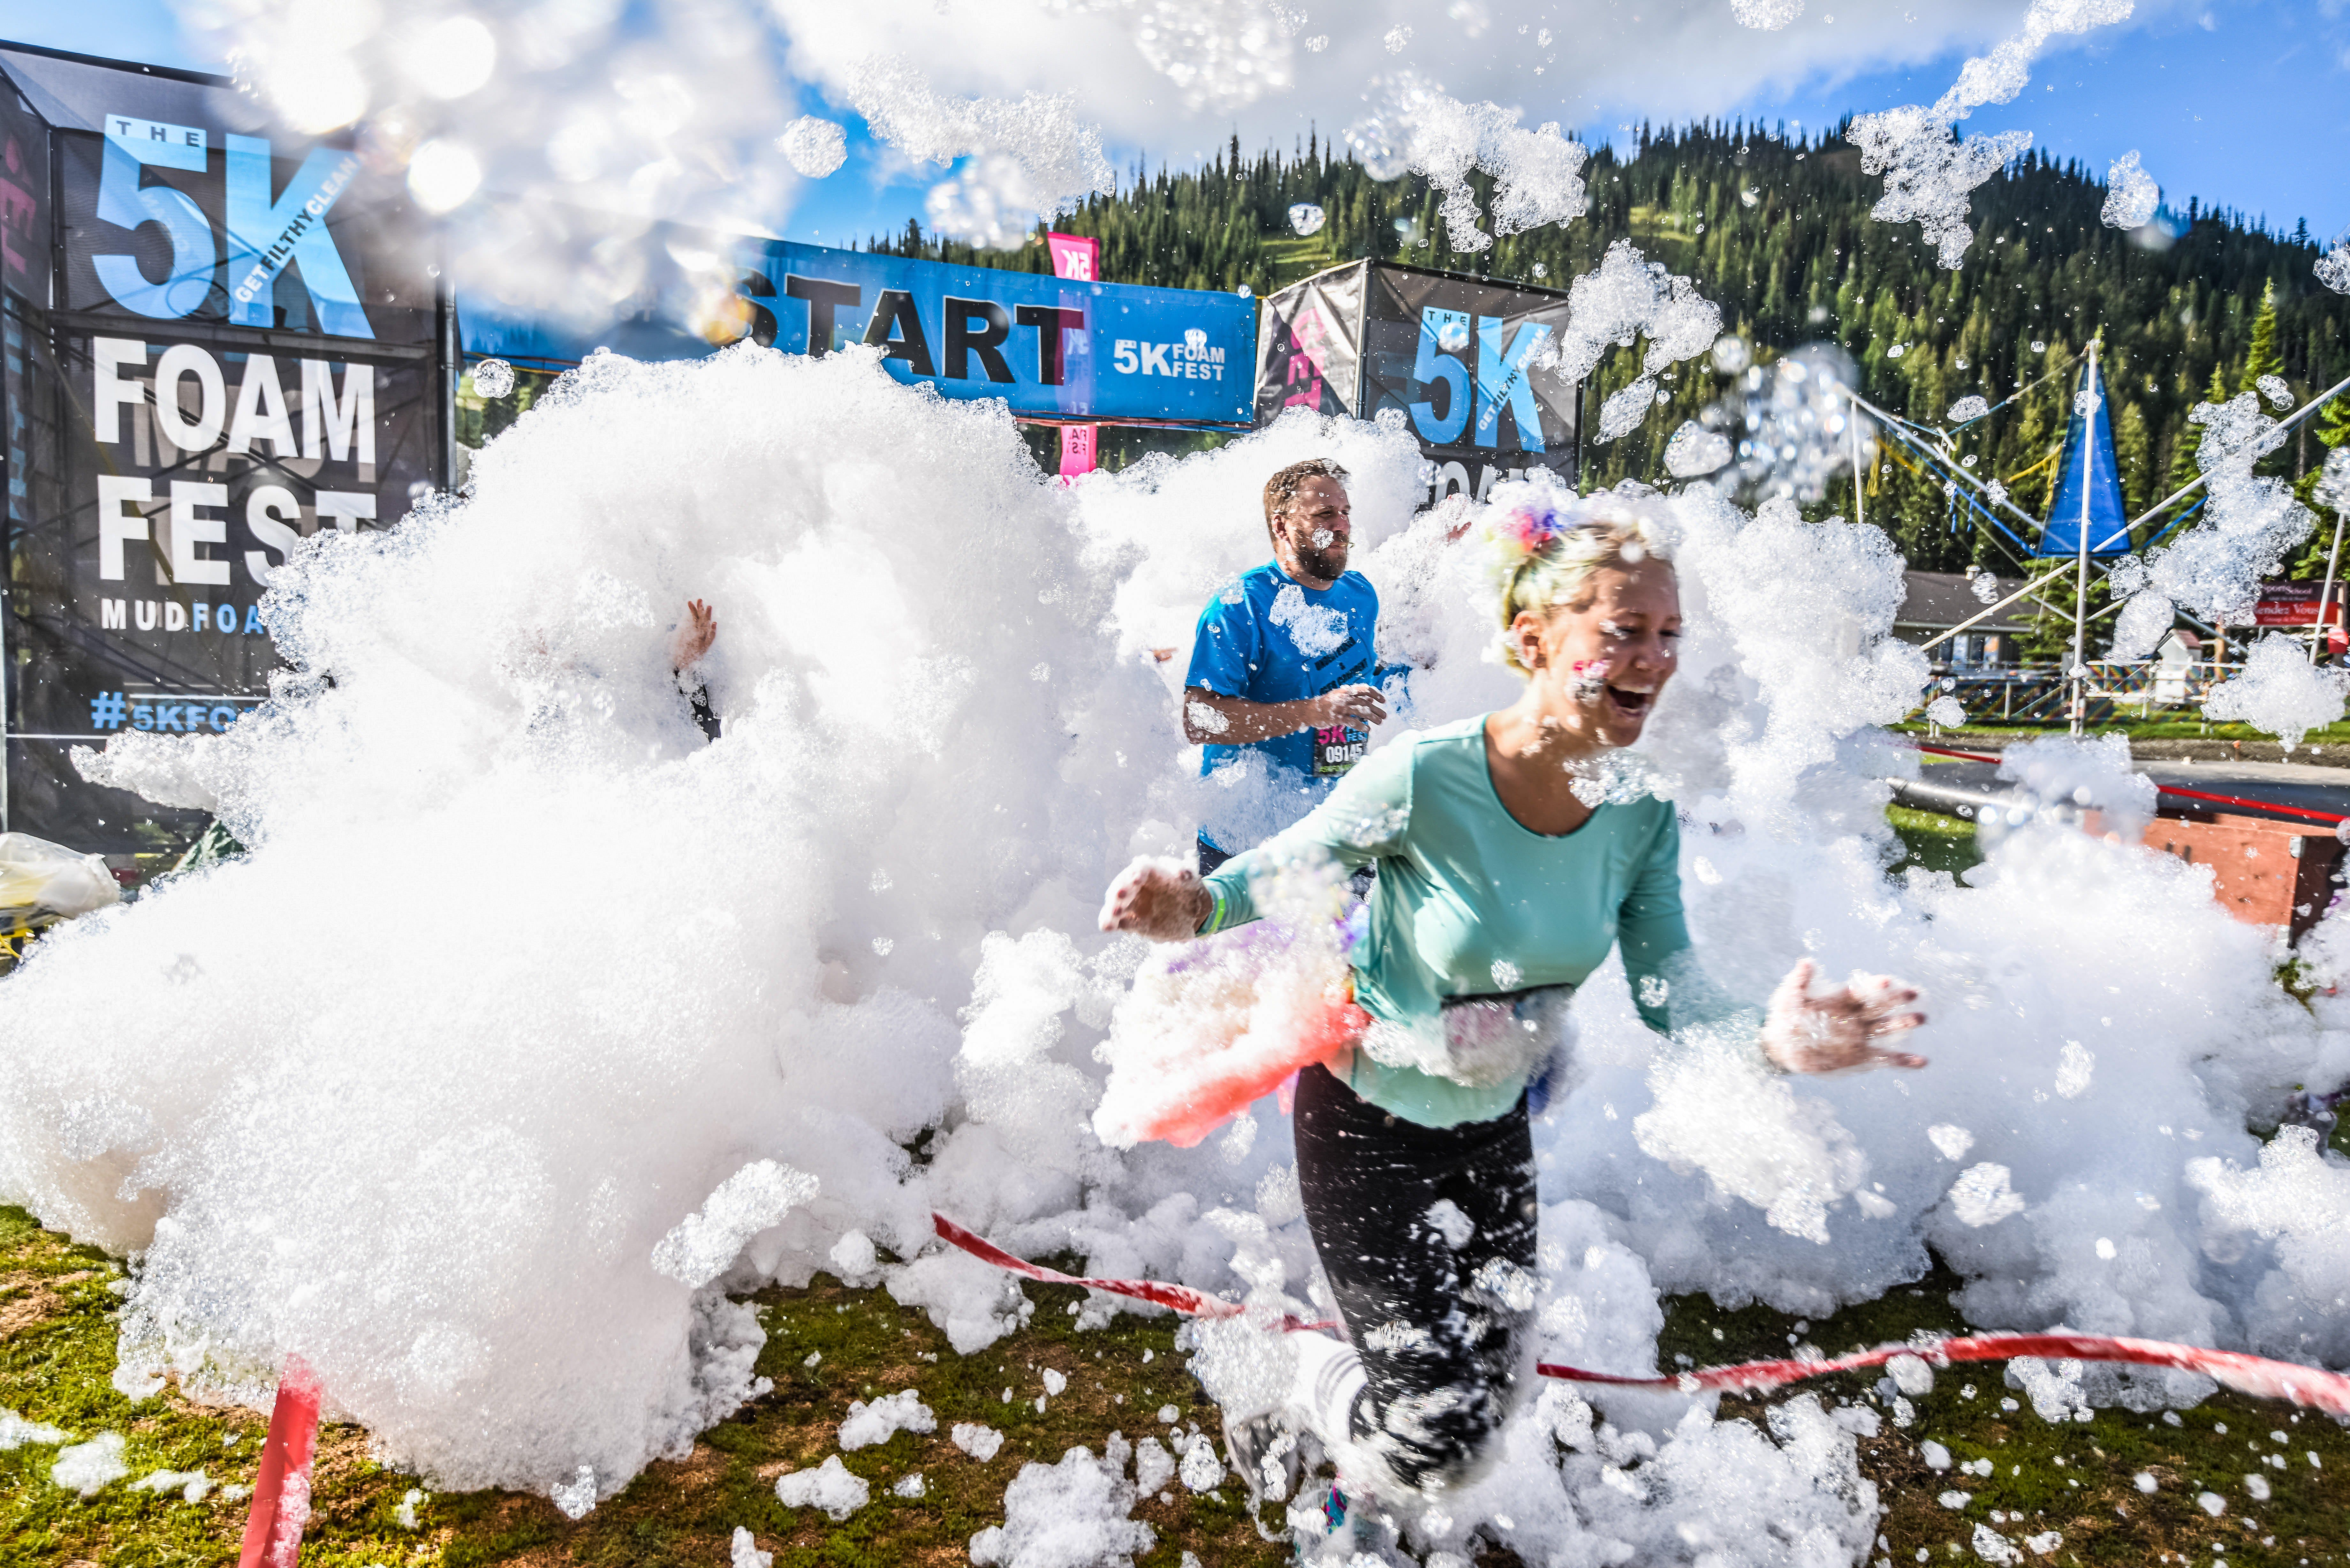 The 5K Foam Fest - Perth - Goulburn Accommodation